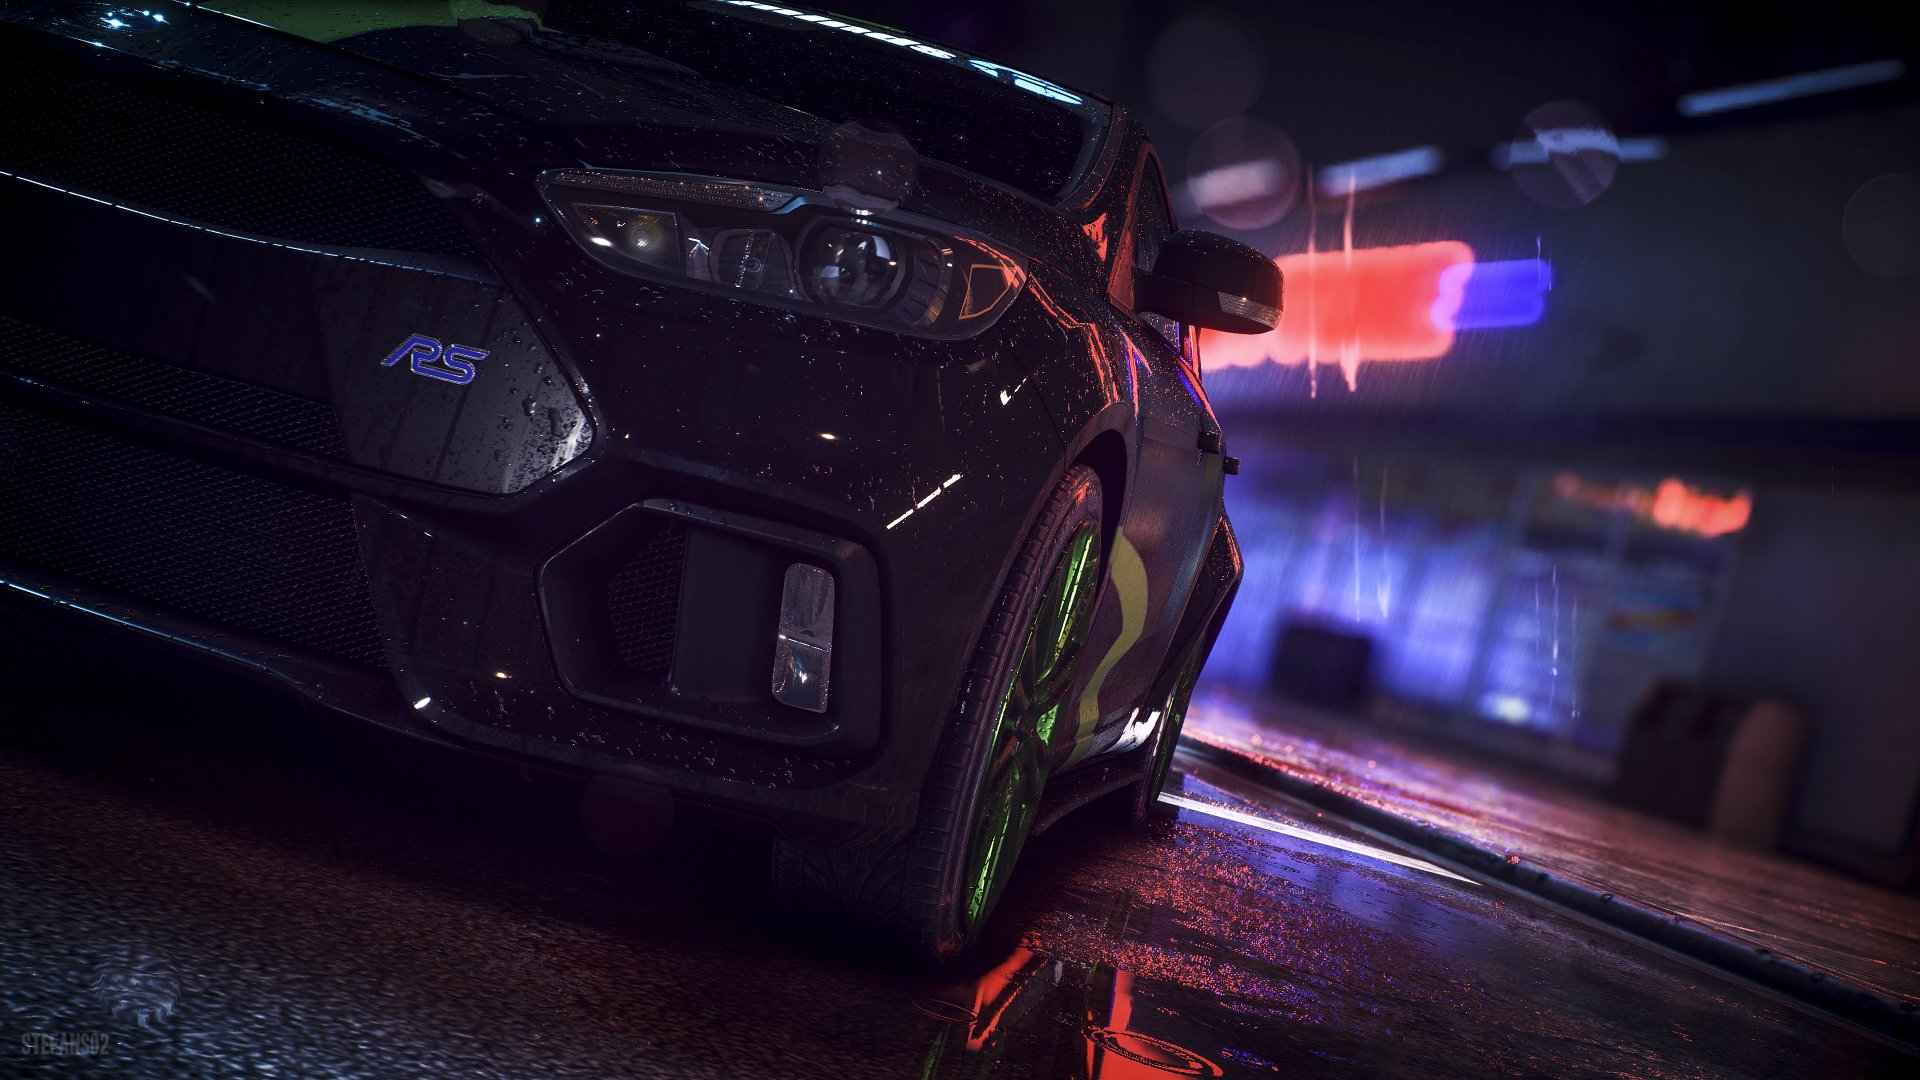 Bmw 5 Series Wallpaper Iphone Need For Speed Ford Focus Rs 2016 4k Ultra Hd Wallpaper